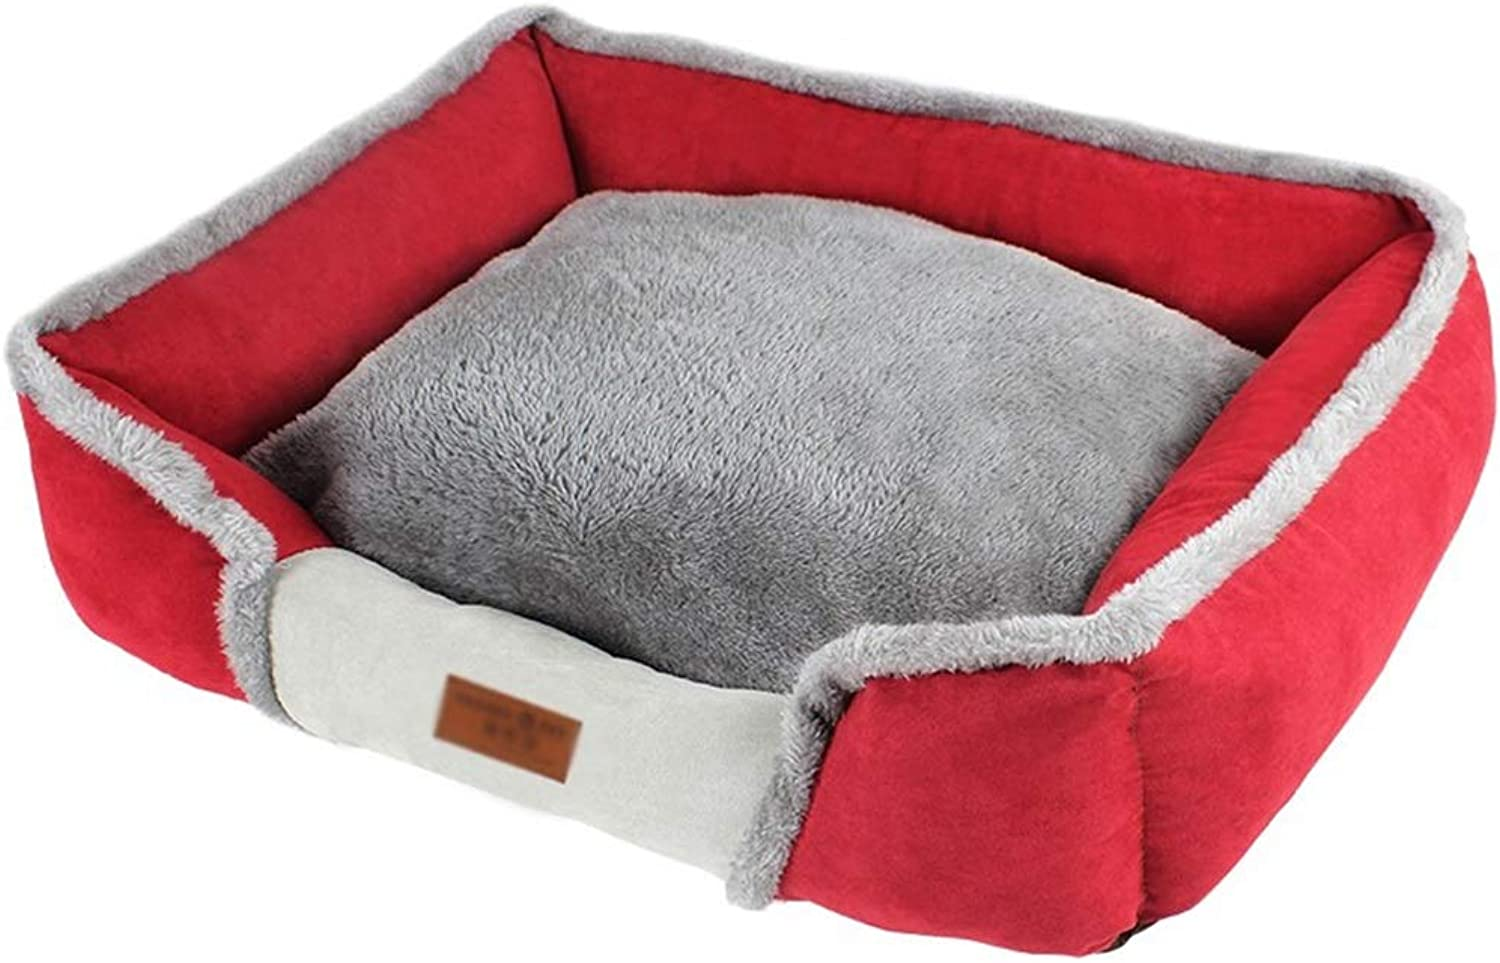 66ccwwww Pet bed Pet nest, kennel cat litter kennel small medium and large dog dog mat dog bed dog house dog cat pet (color   RED, Size   Xl)